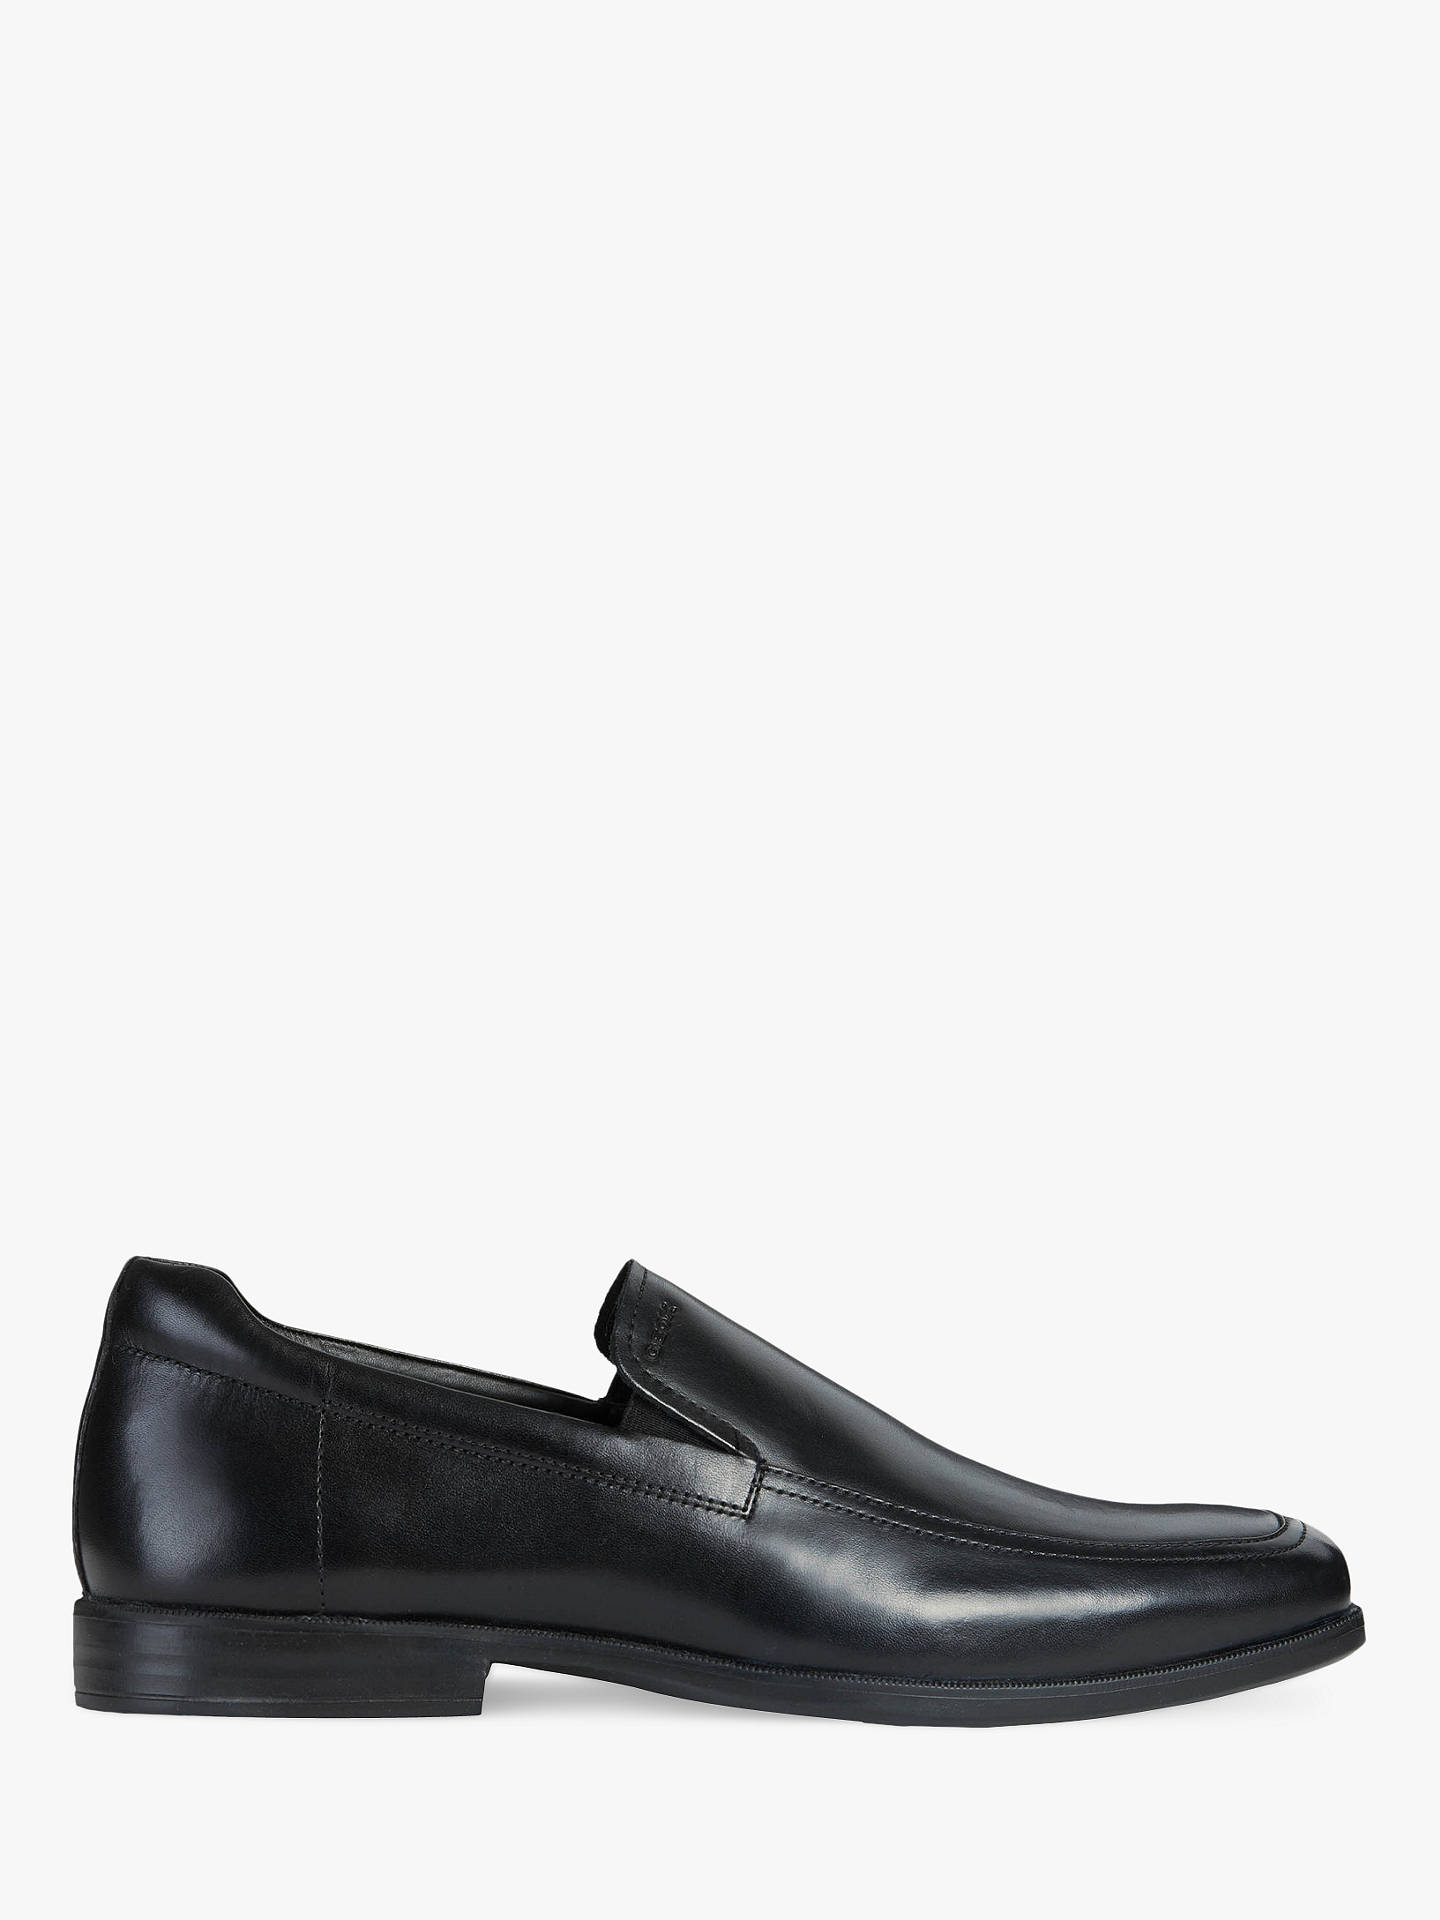 f7eefad9a96 Buy Geox Calgary Leather Loafers, Black, 8 Online at johnlewis.com ...